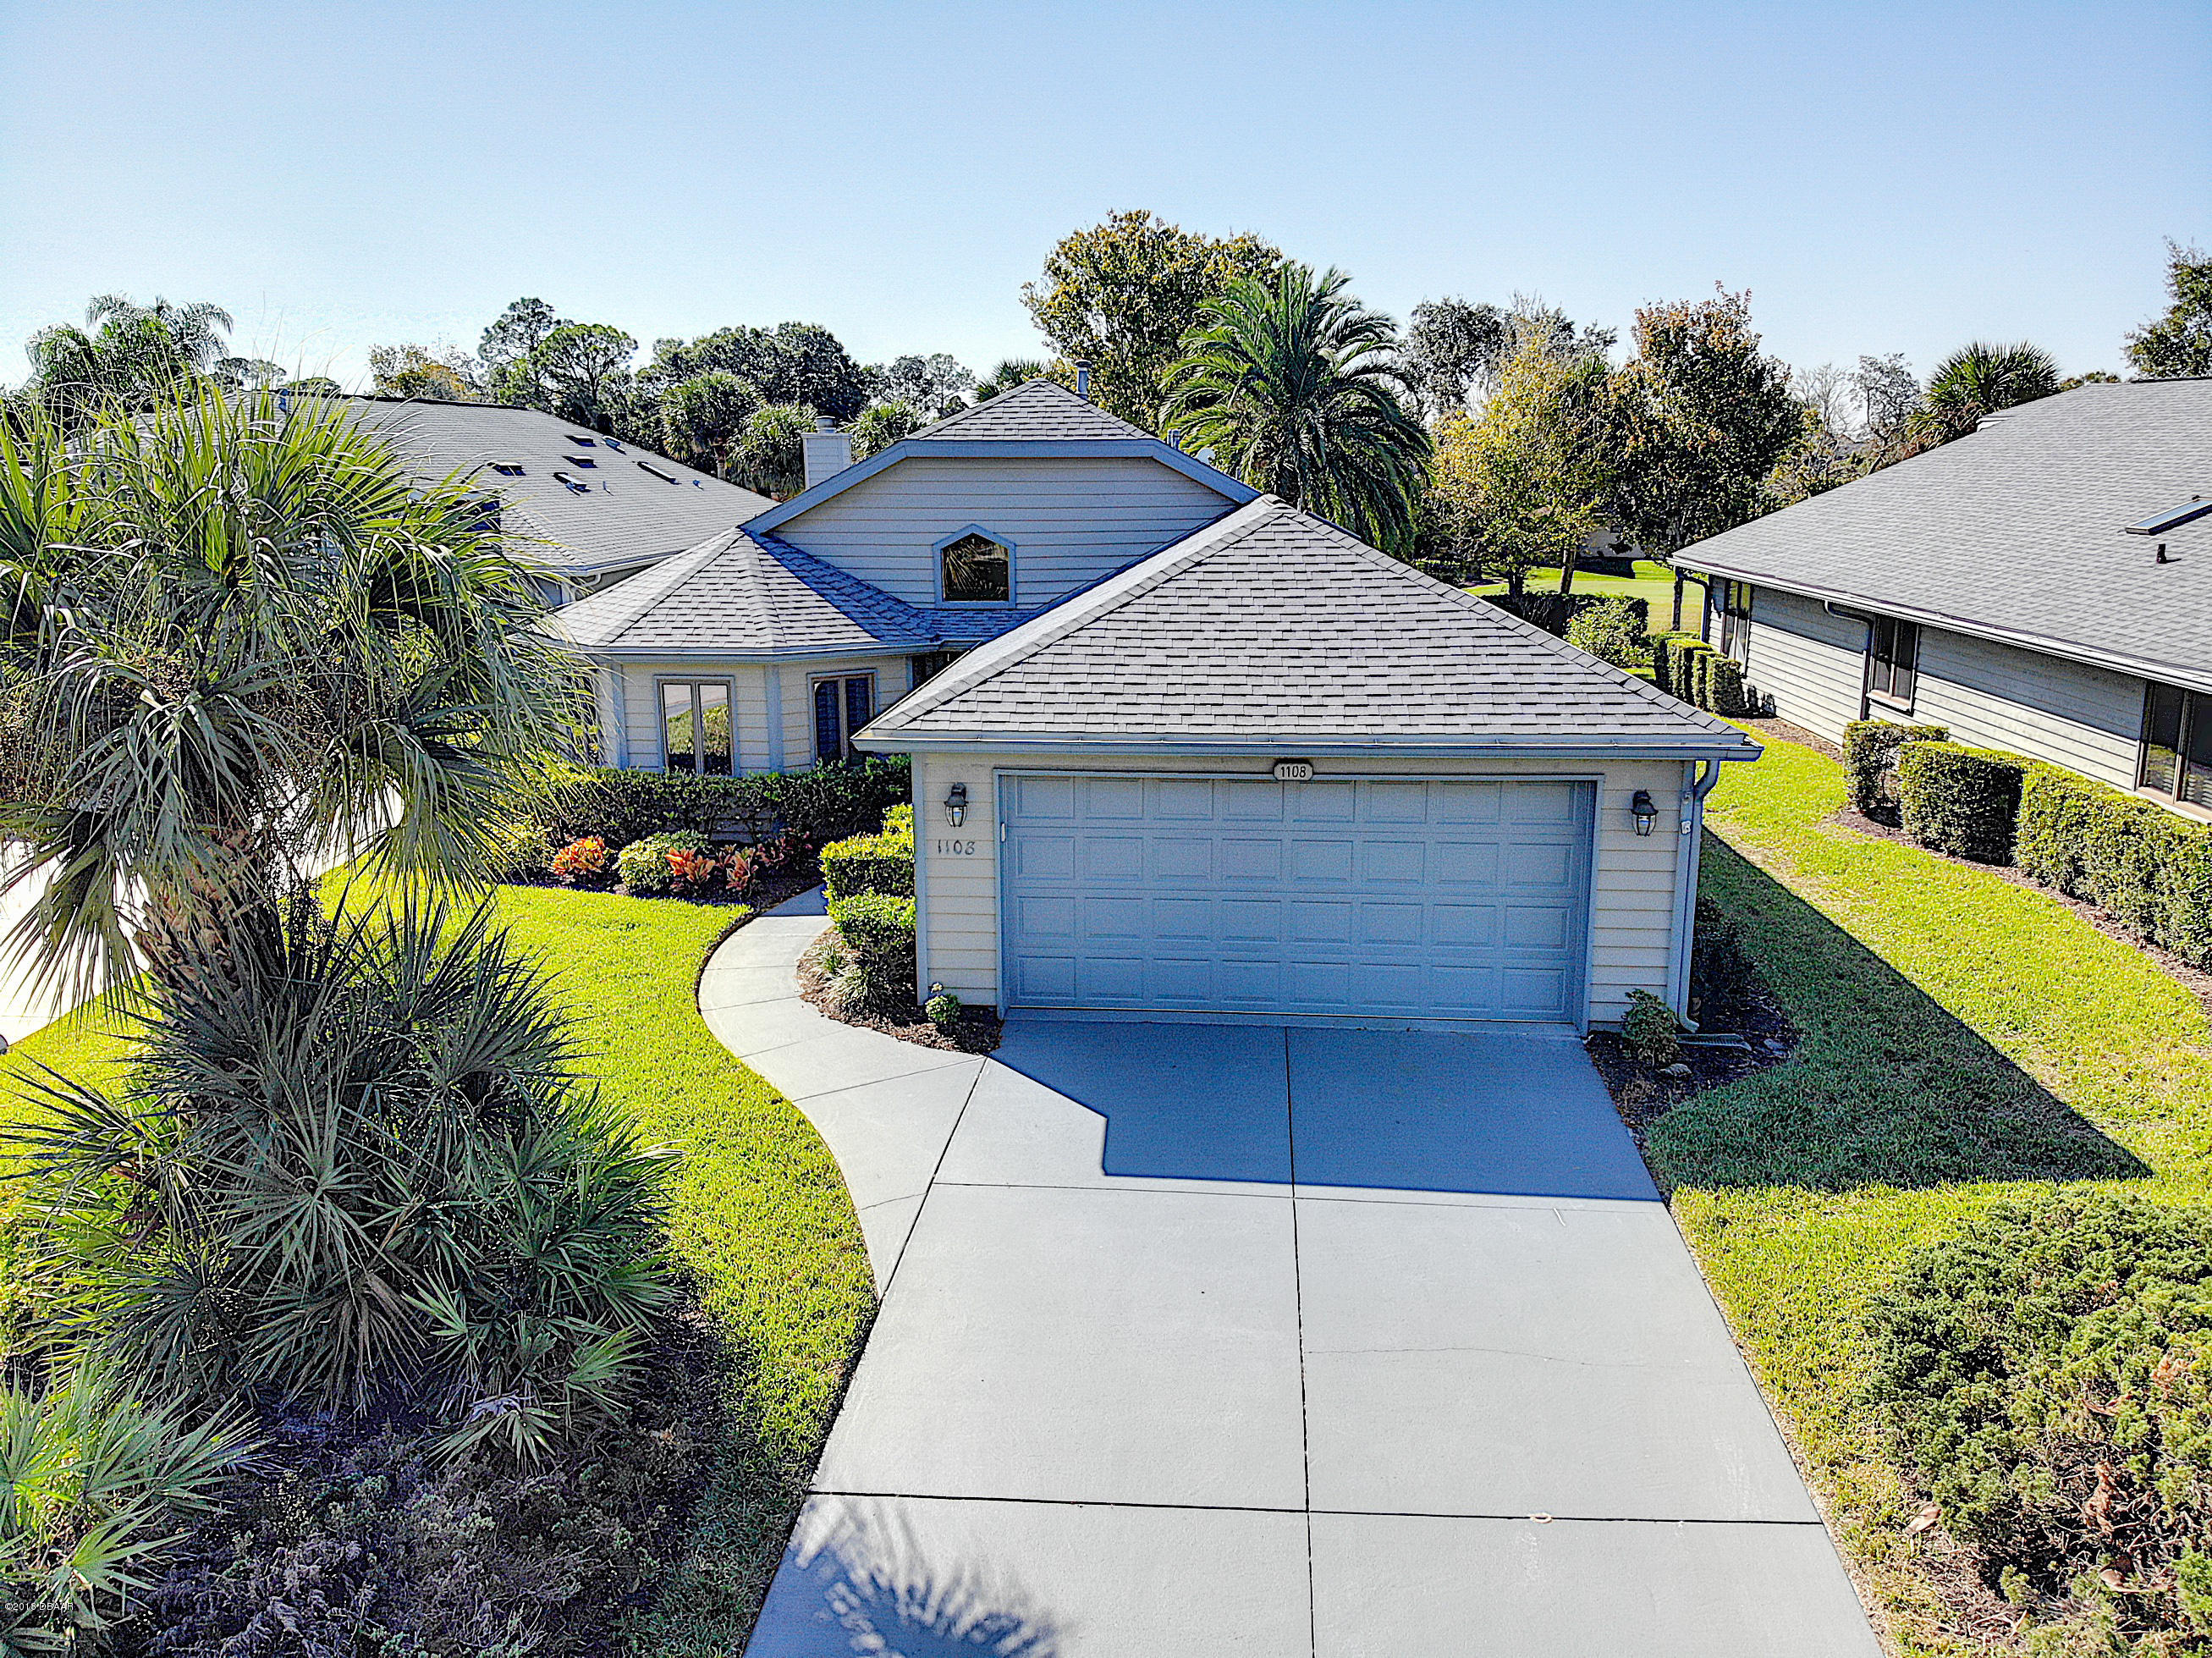 Photo of 1108 Loch Lomond Court, New Smyrna Beach, FL 32168